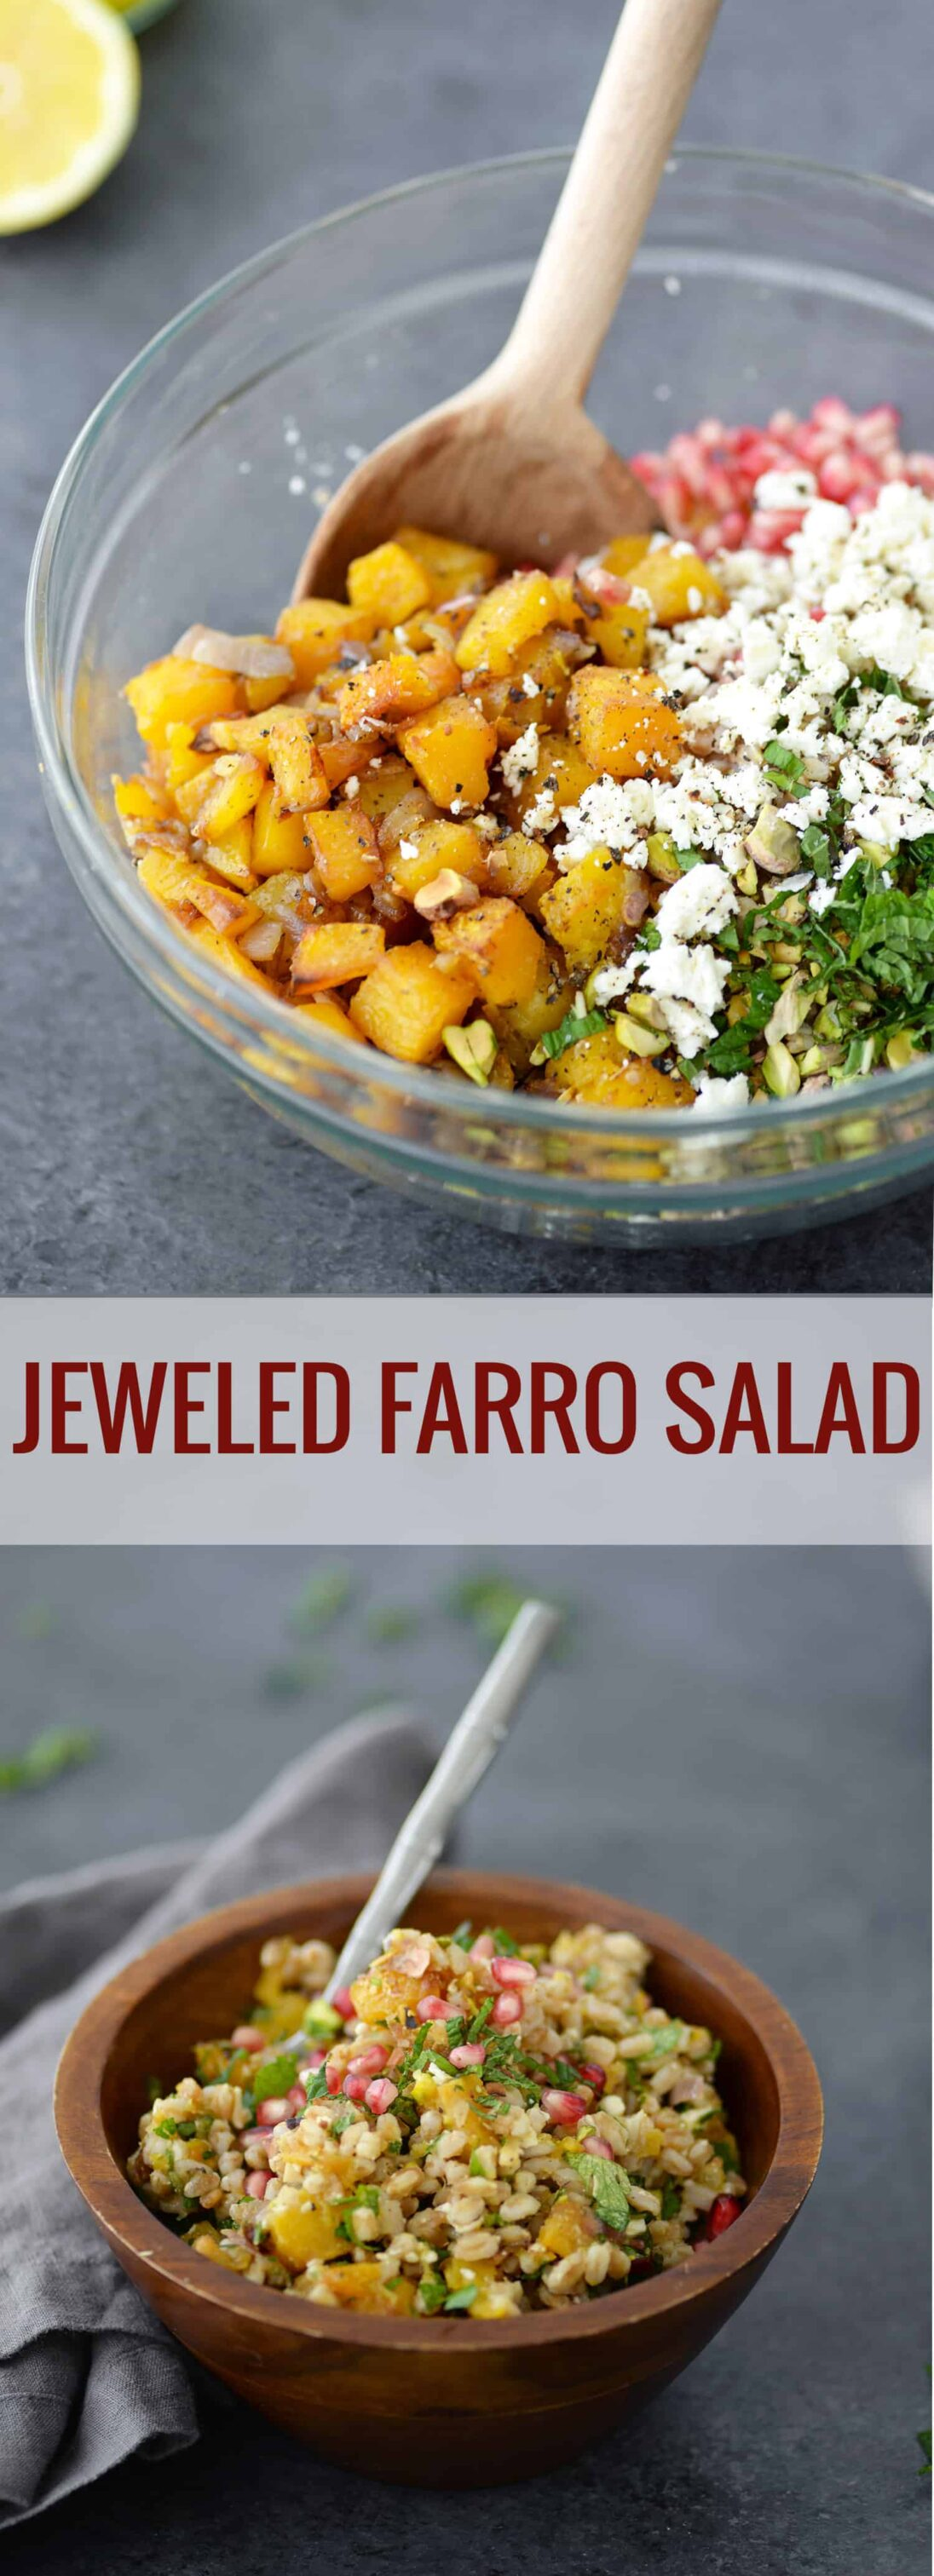 Jeweled Farro Salad! You've gotta try this salad for Thanksgiving or Christmas. Roasted butternut squash, pistachios, pomegranate seeds, farro, mint and parsley in a lemon dressing. SO good! | www.delishknowledge.com